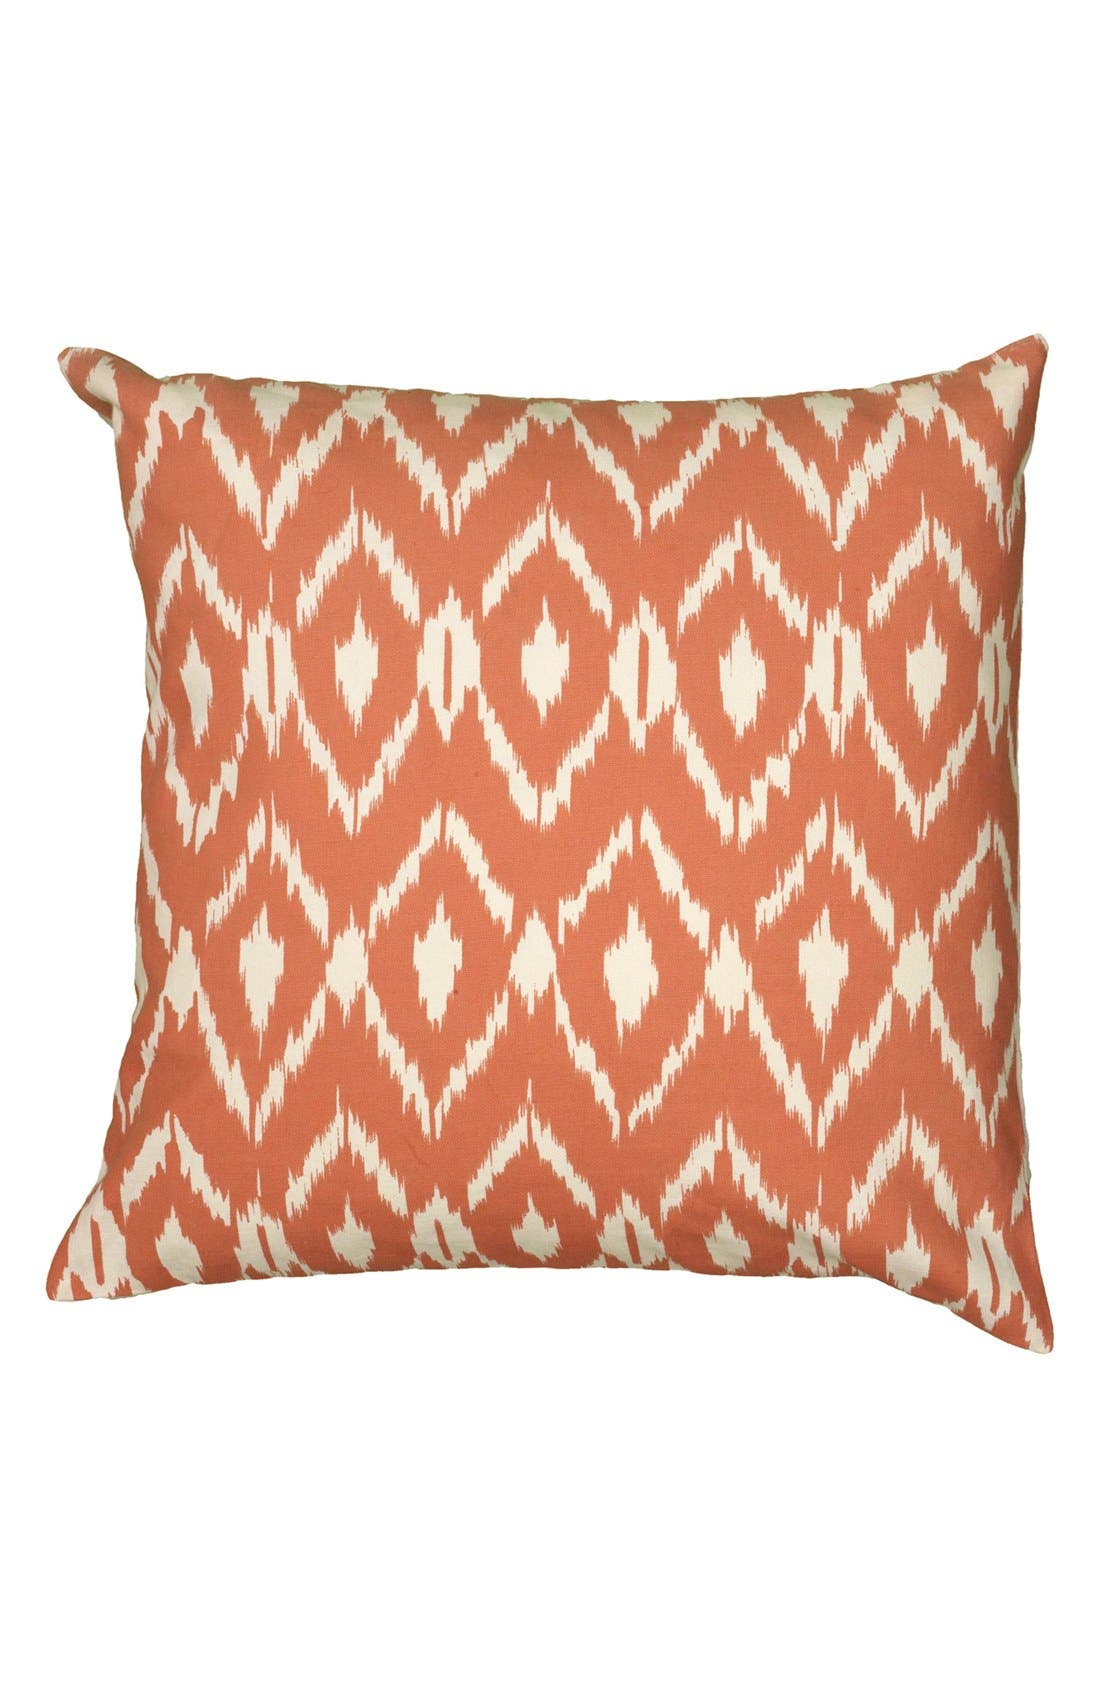 Main Image - Rizzy Home Ikat Pillow